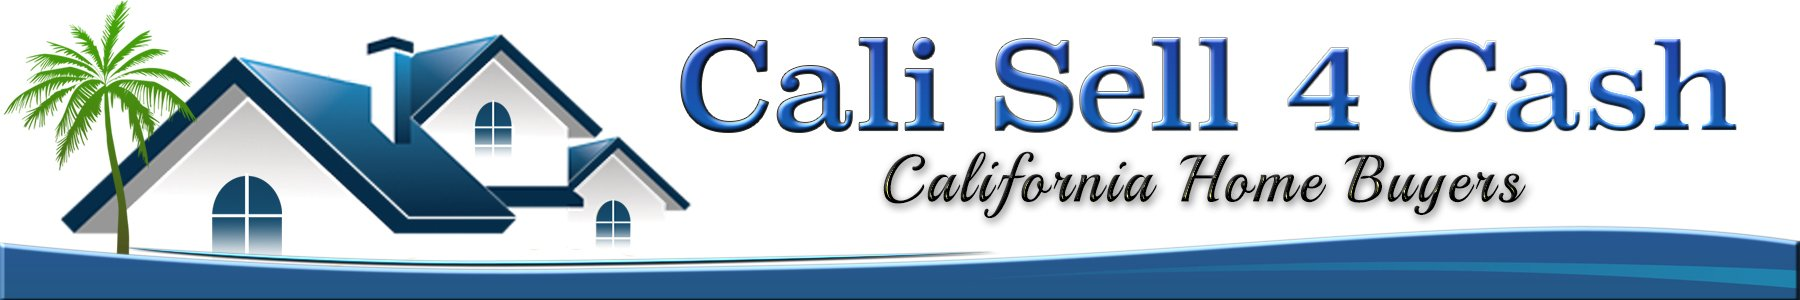 Cali Sell4Cash logo